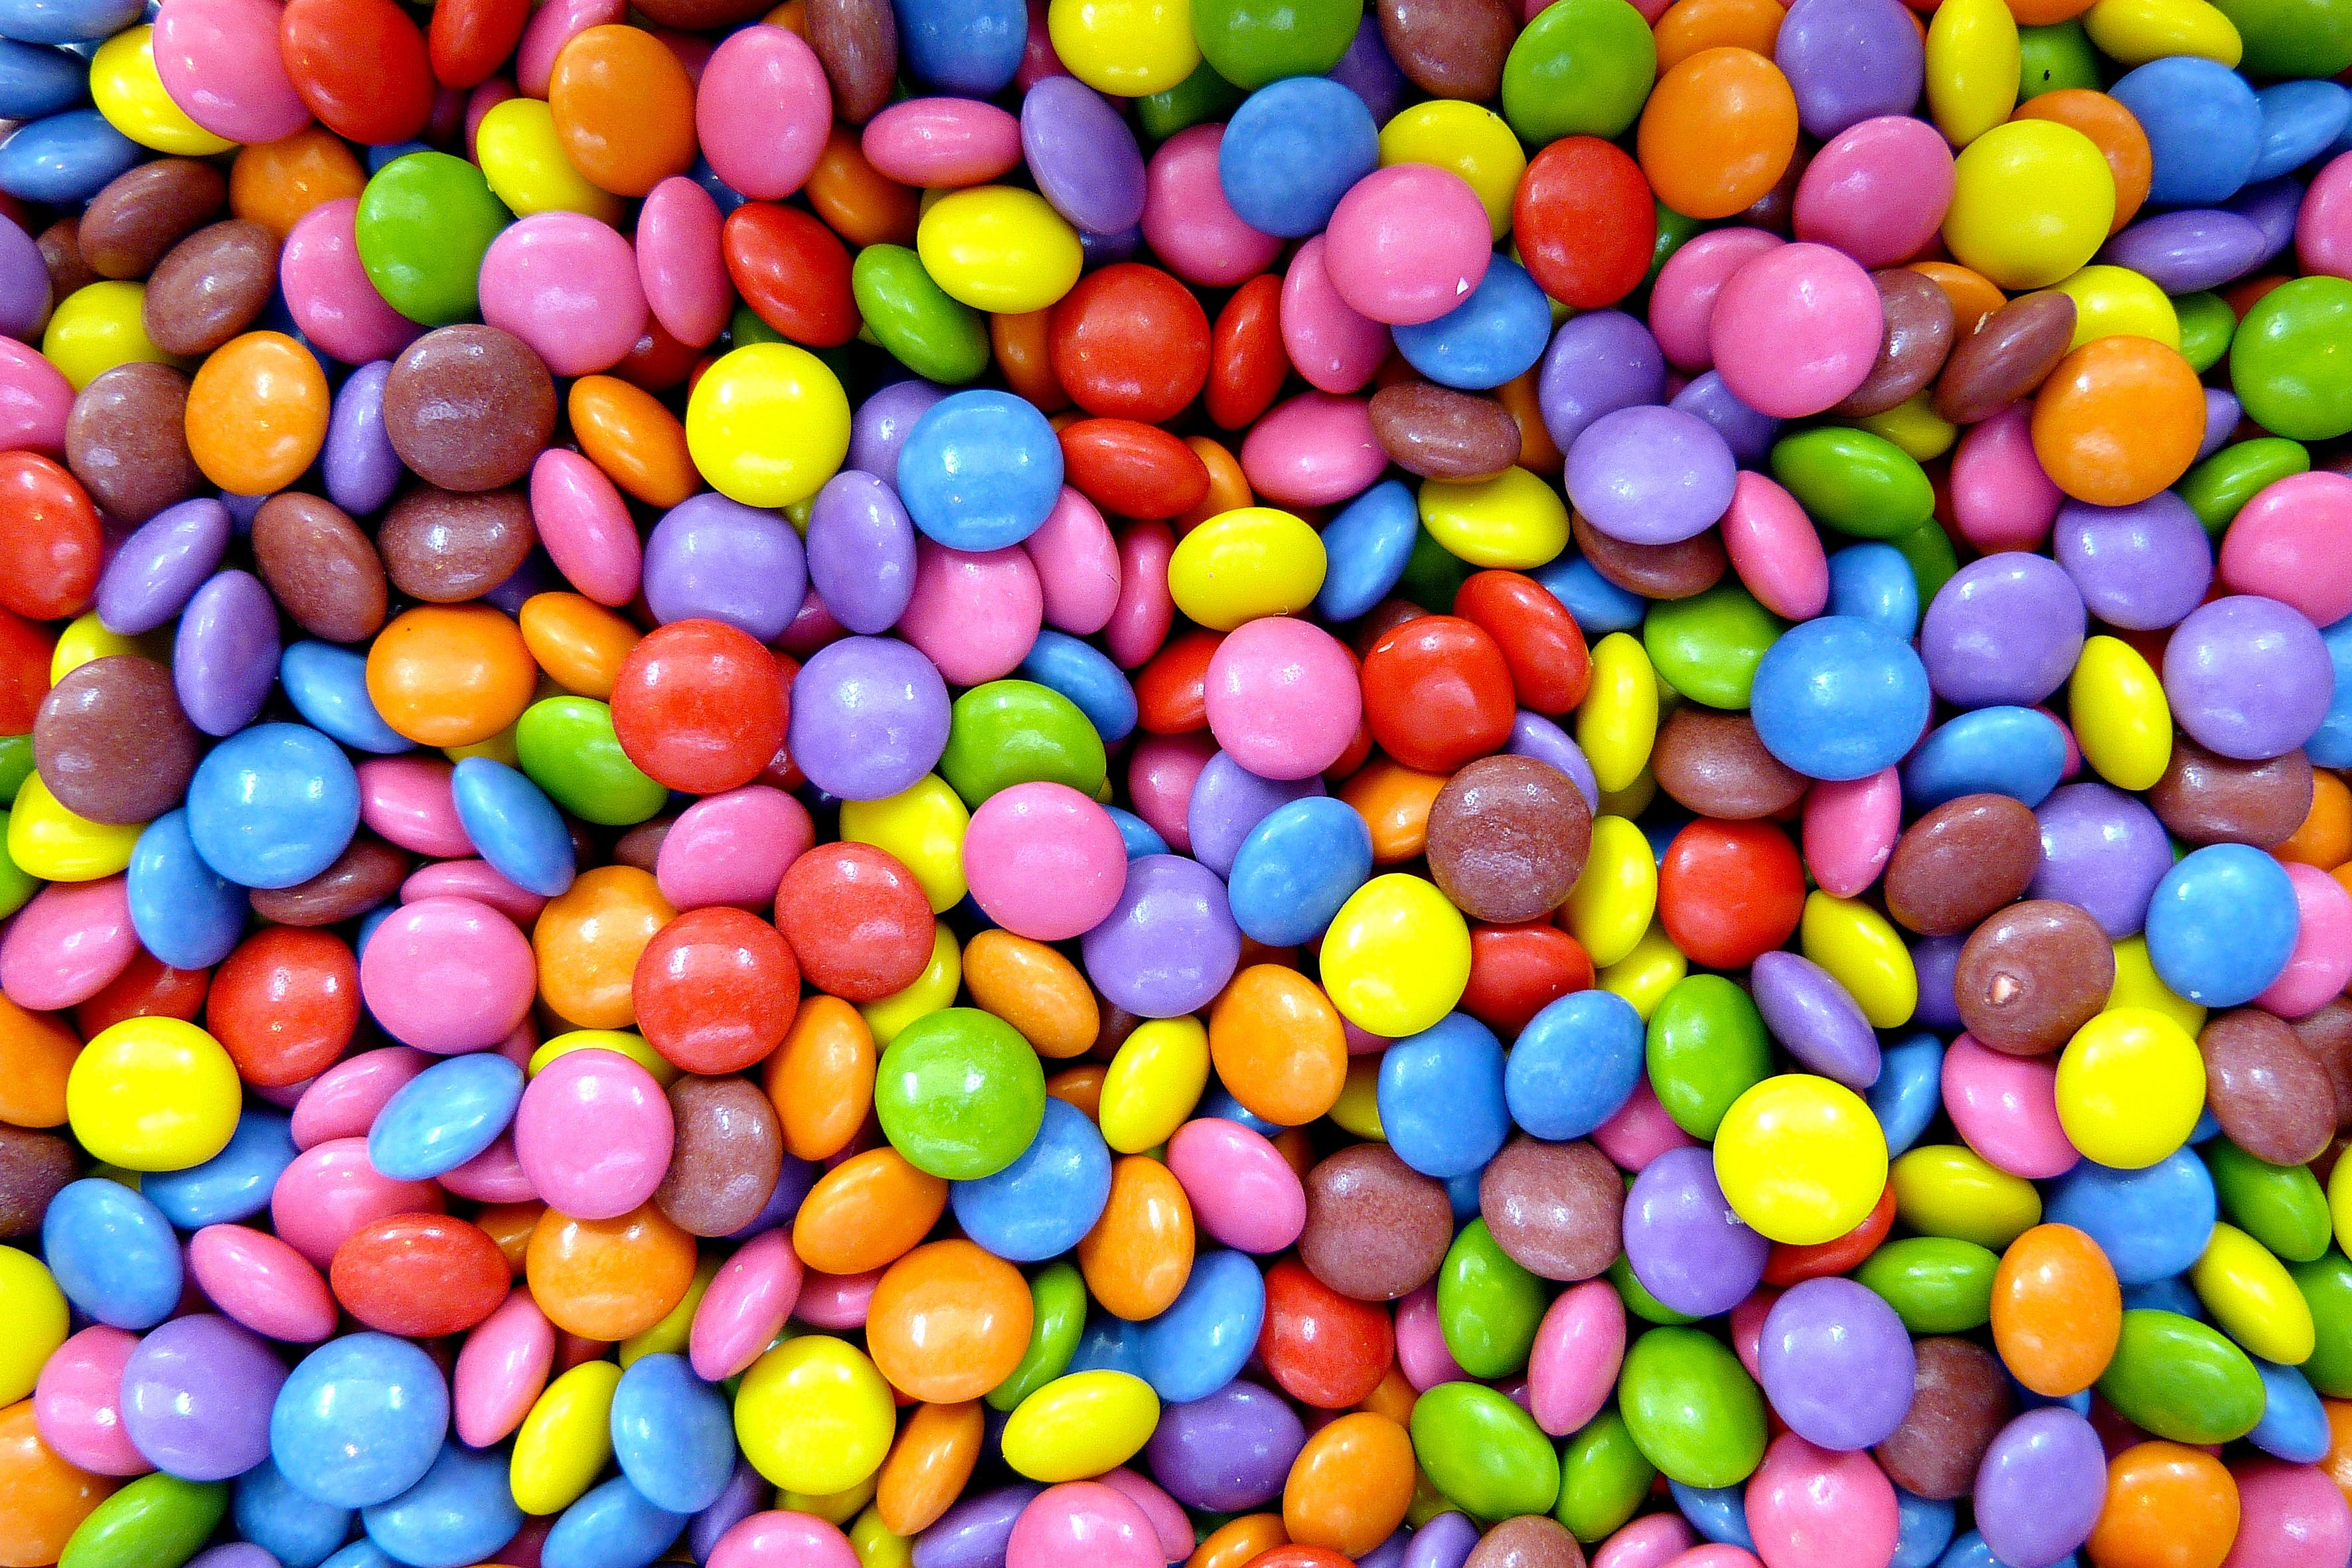 Free stock photo of confectionery, lenses, royalty free, smarties